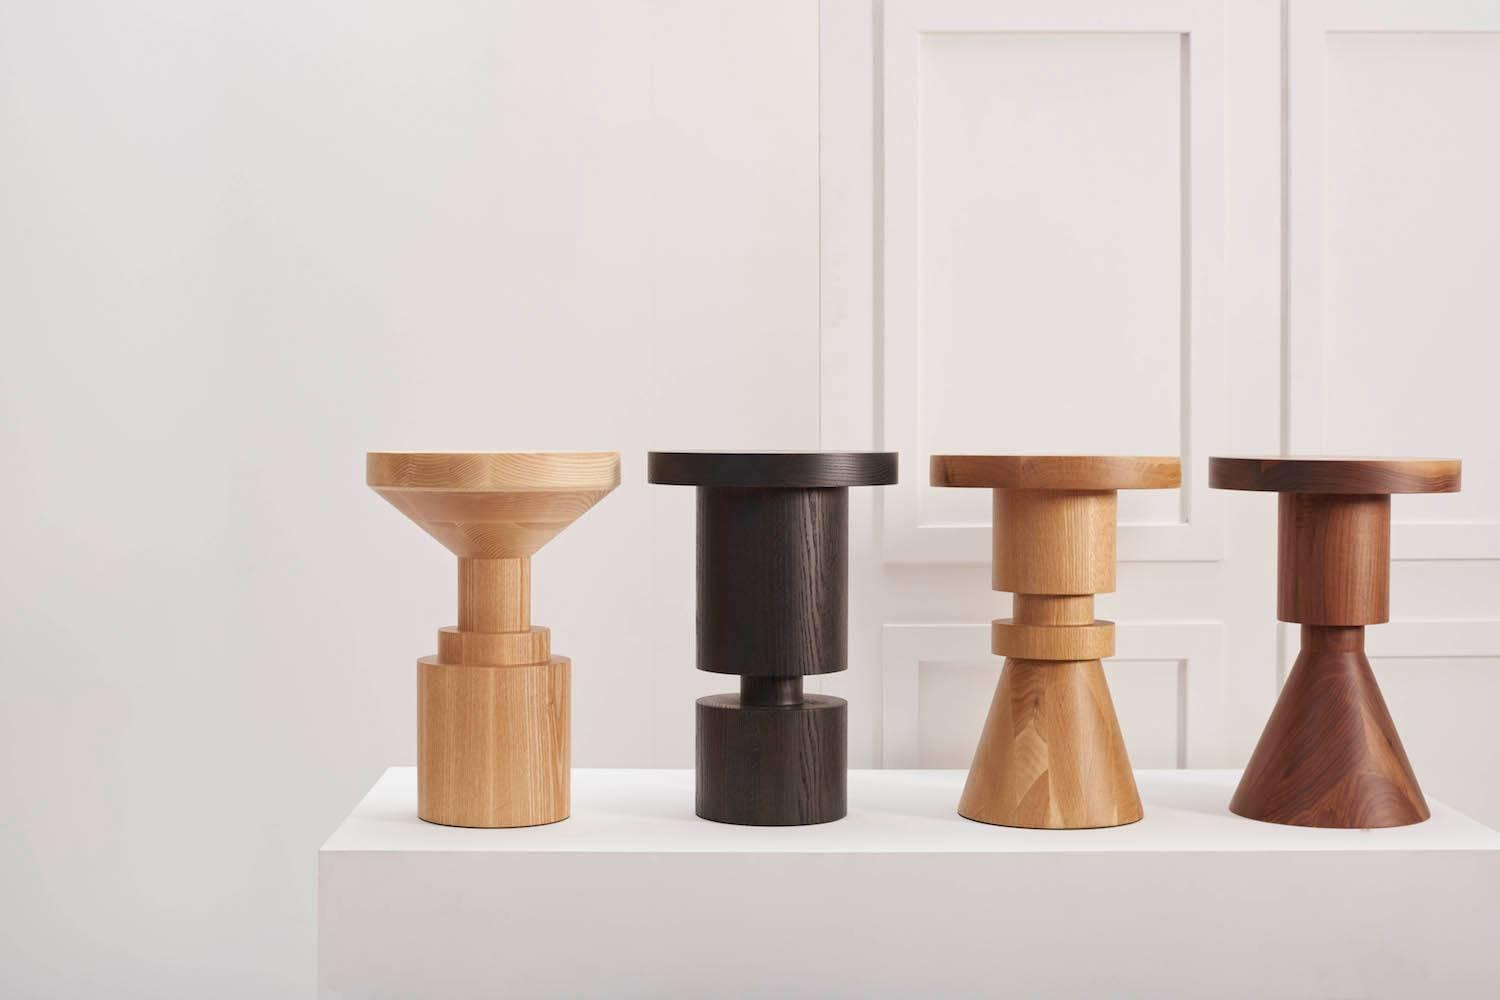 Wooden chess stool d for sale at 1stdibs - Wooden chess tables ...